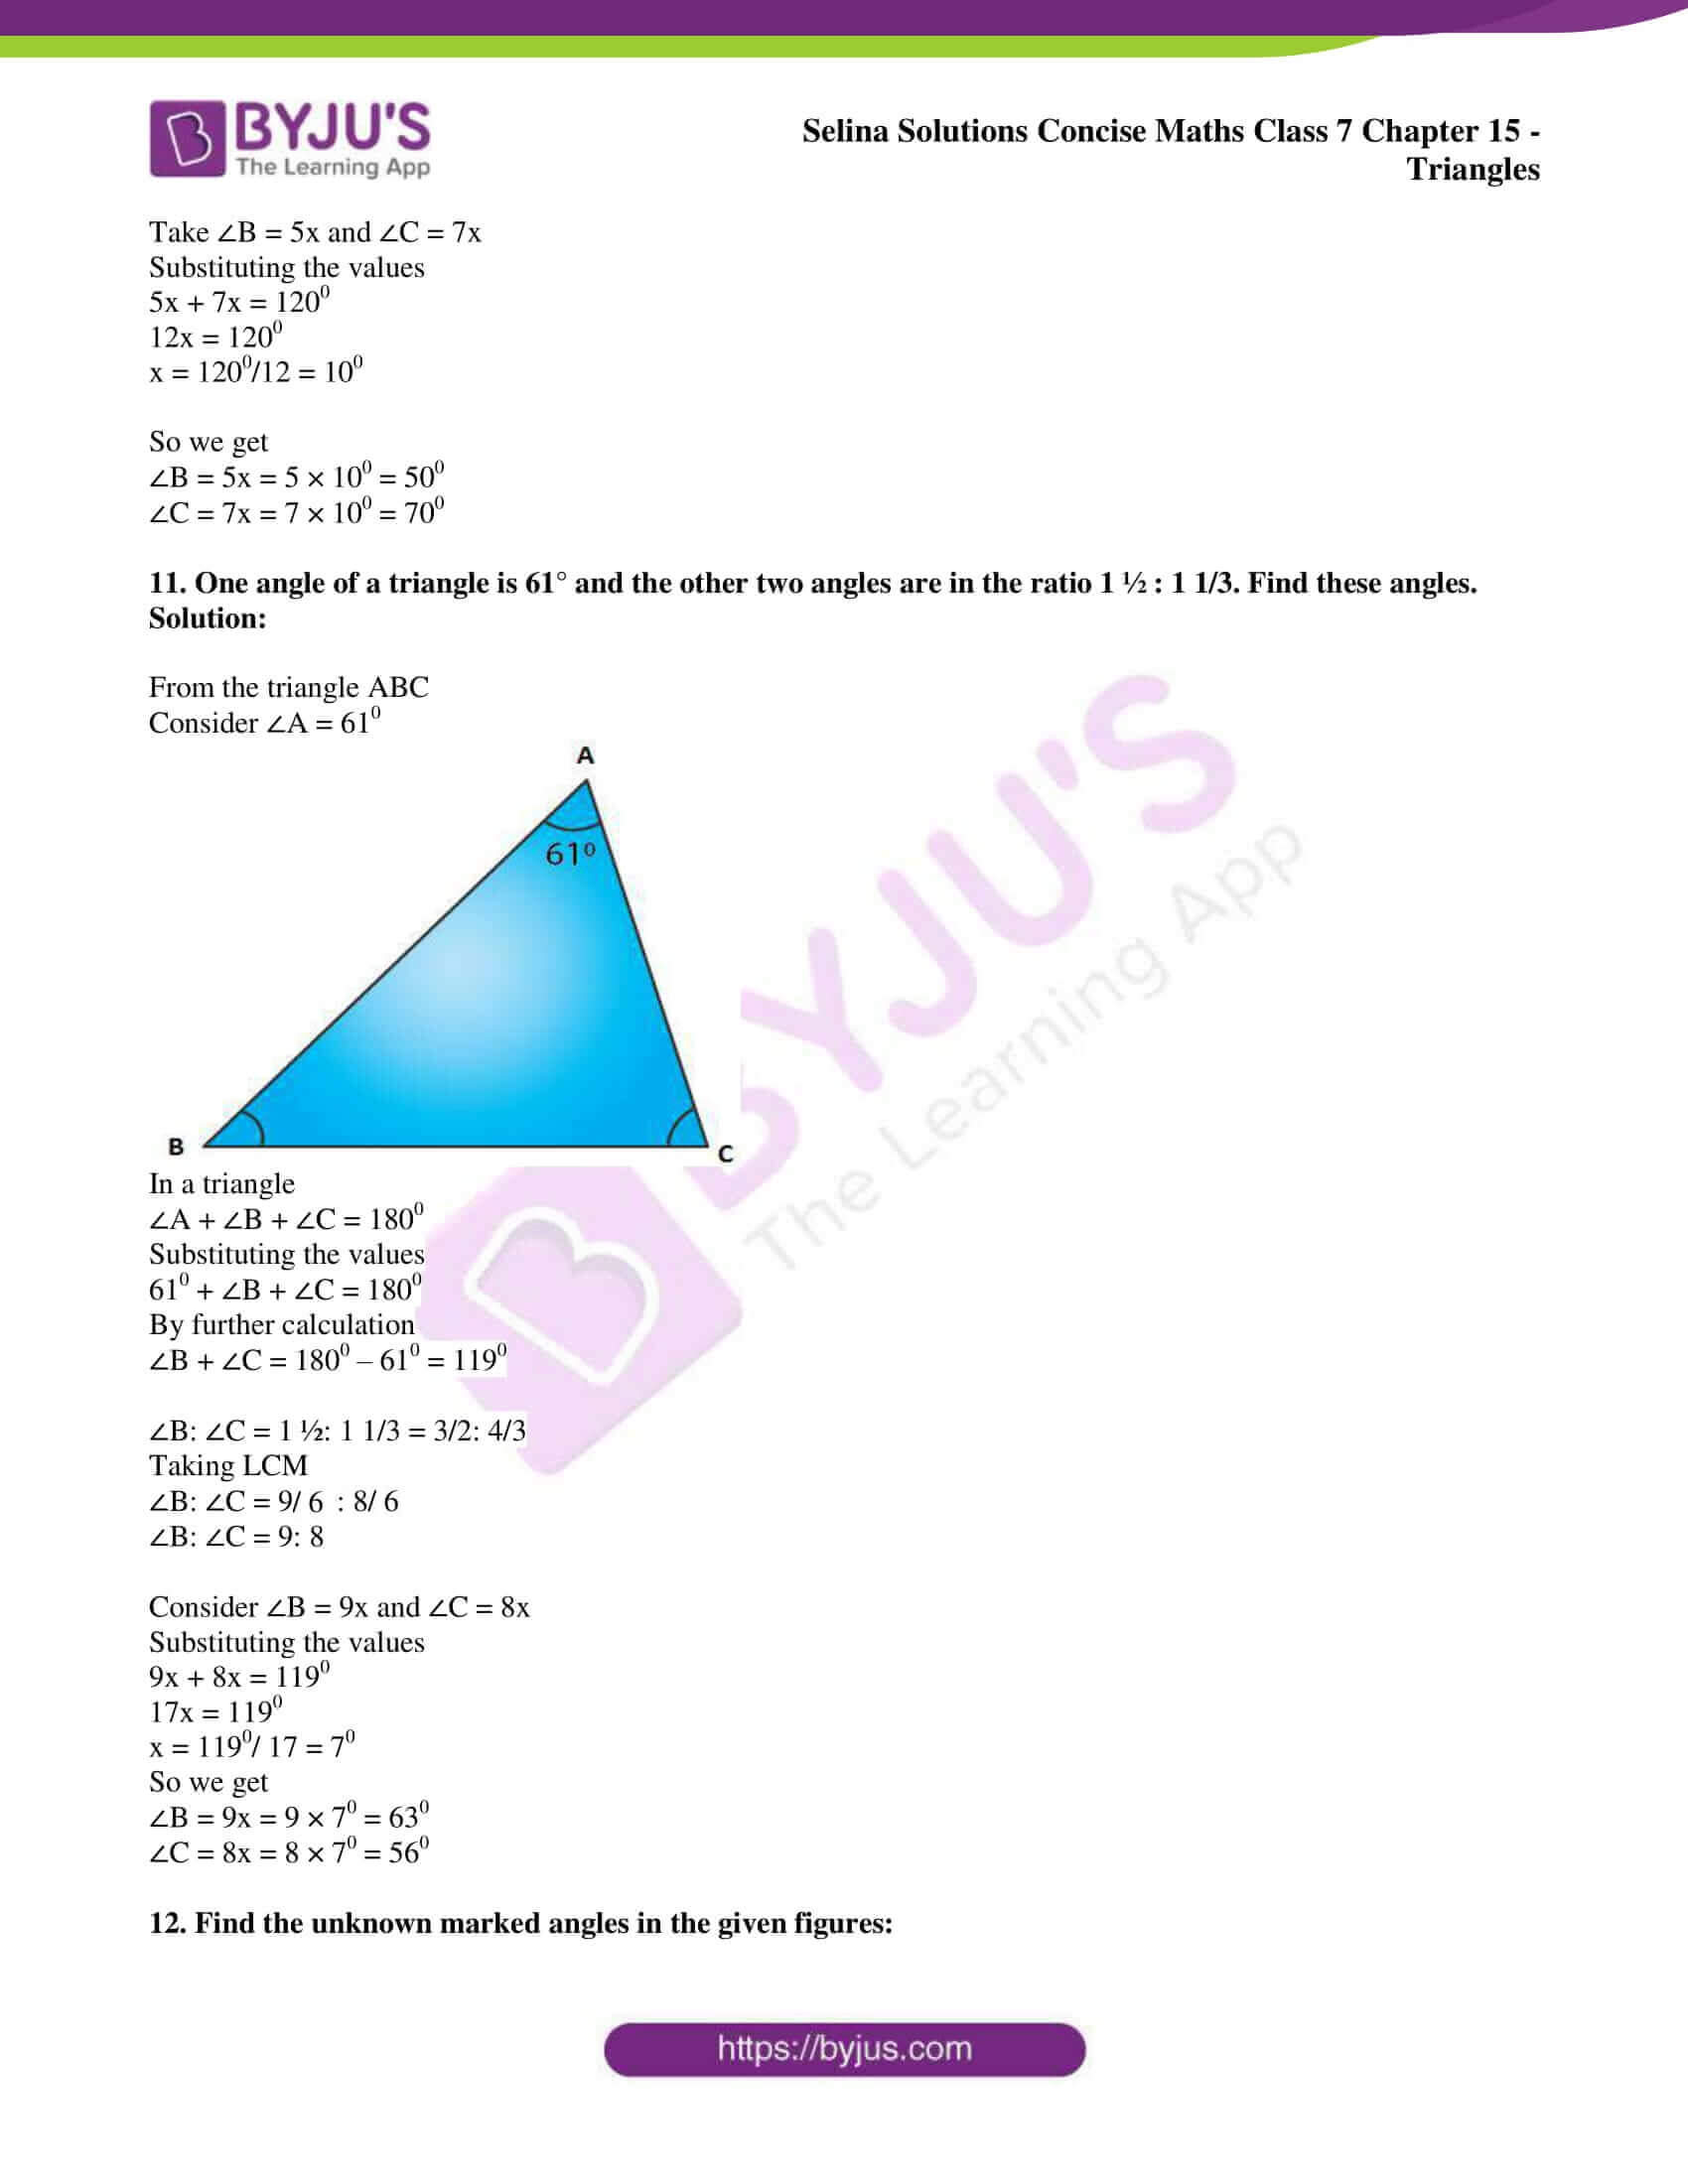 selina sol concise maths class 7 chapter 15 ex a 7